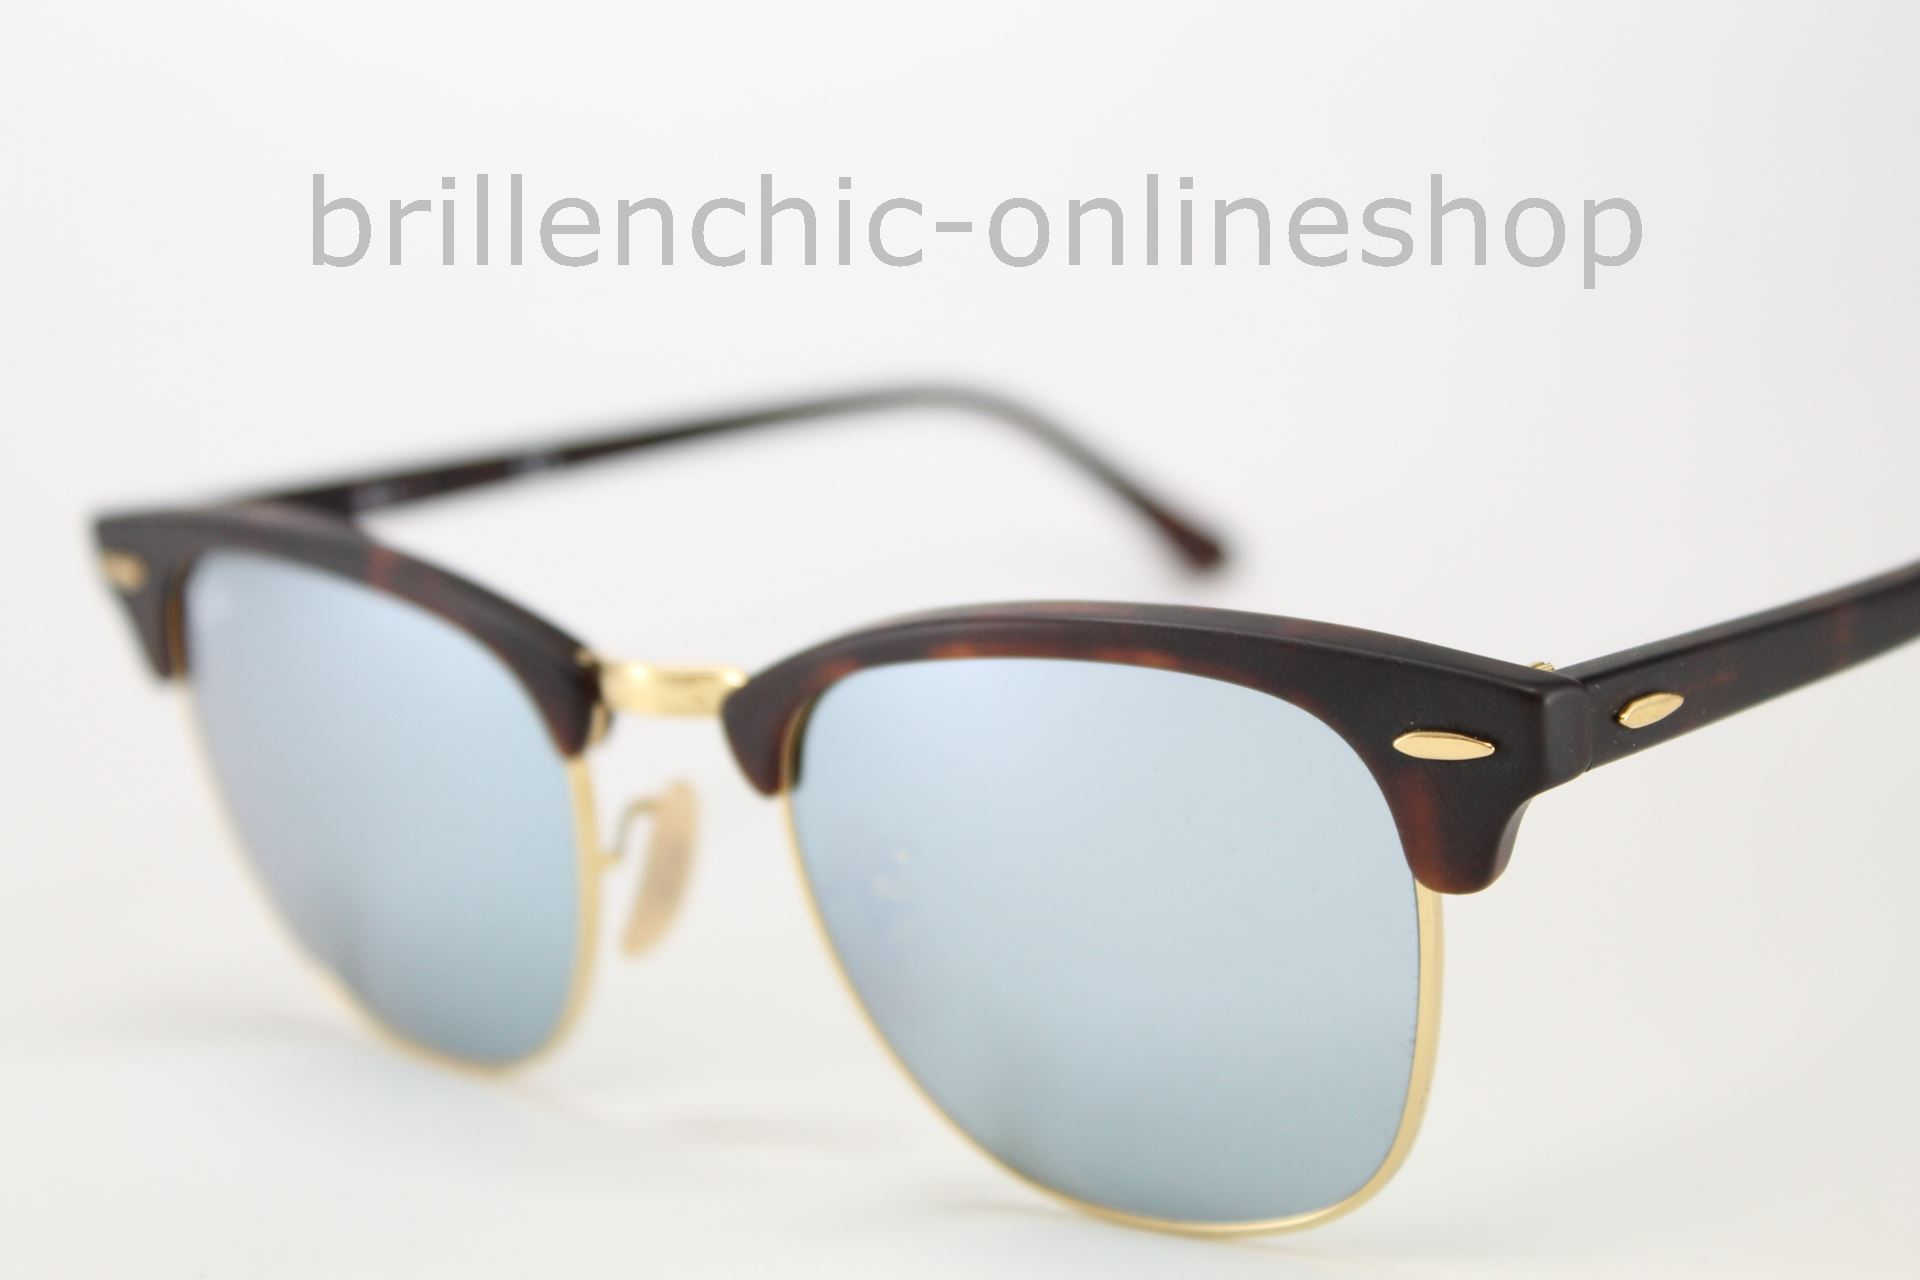 8b1c10ea106a20 Brillenchic-onlineshop in Berlin - Ray Ban CLUBMASTER RB 3016 1145 30